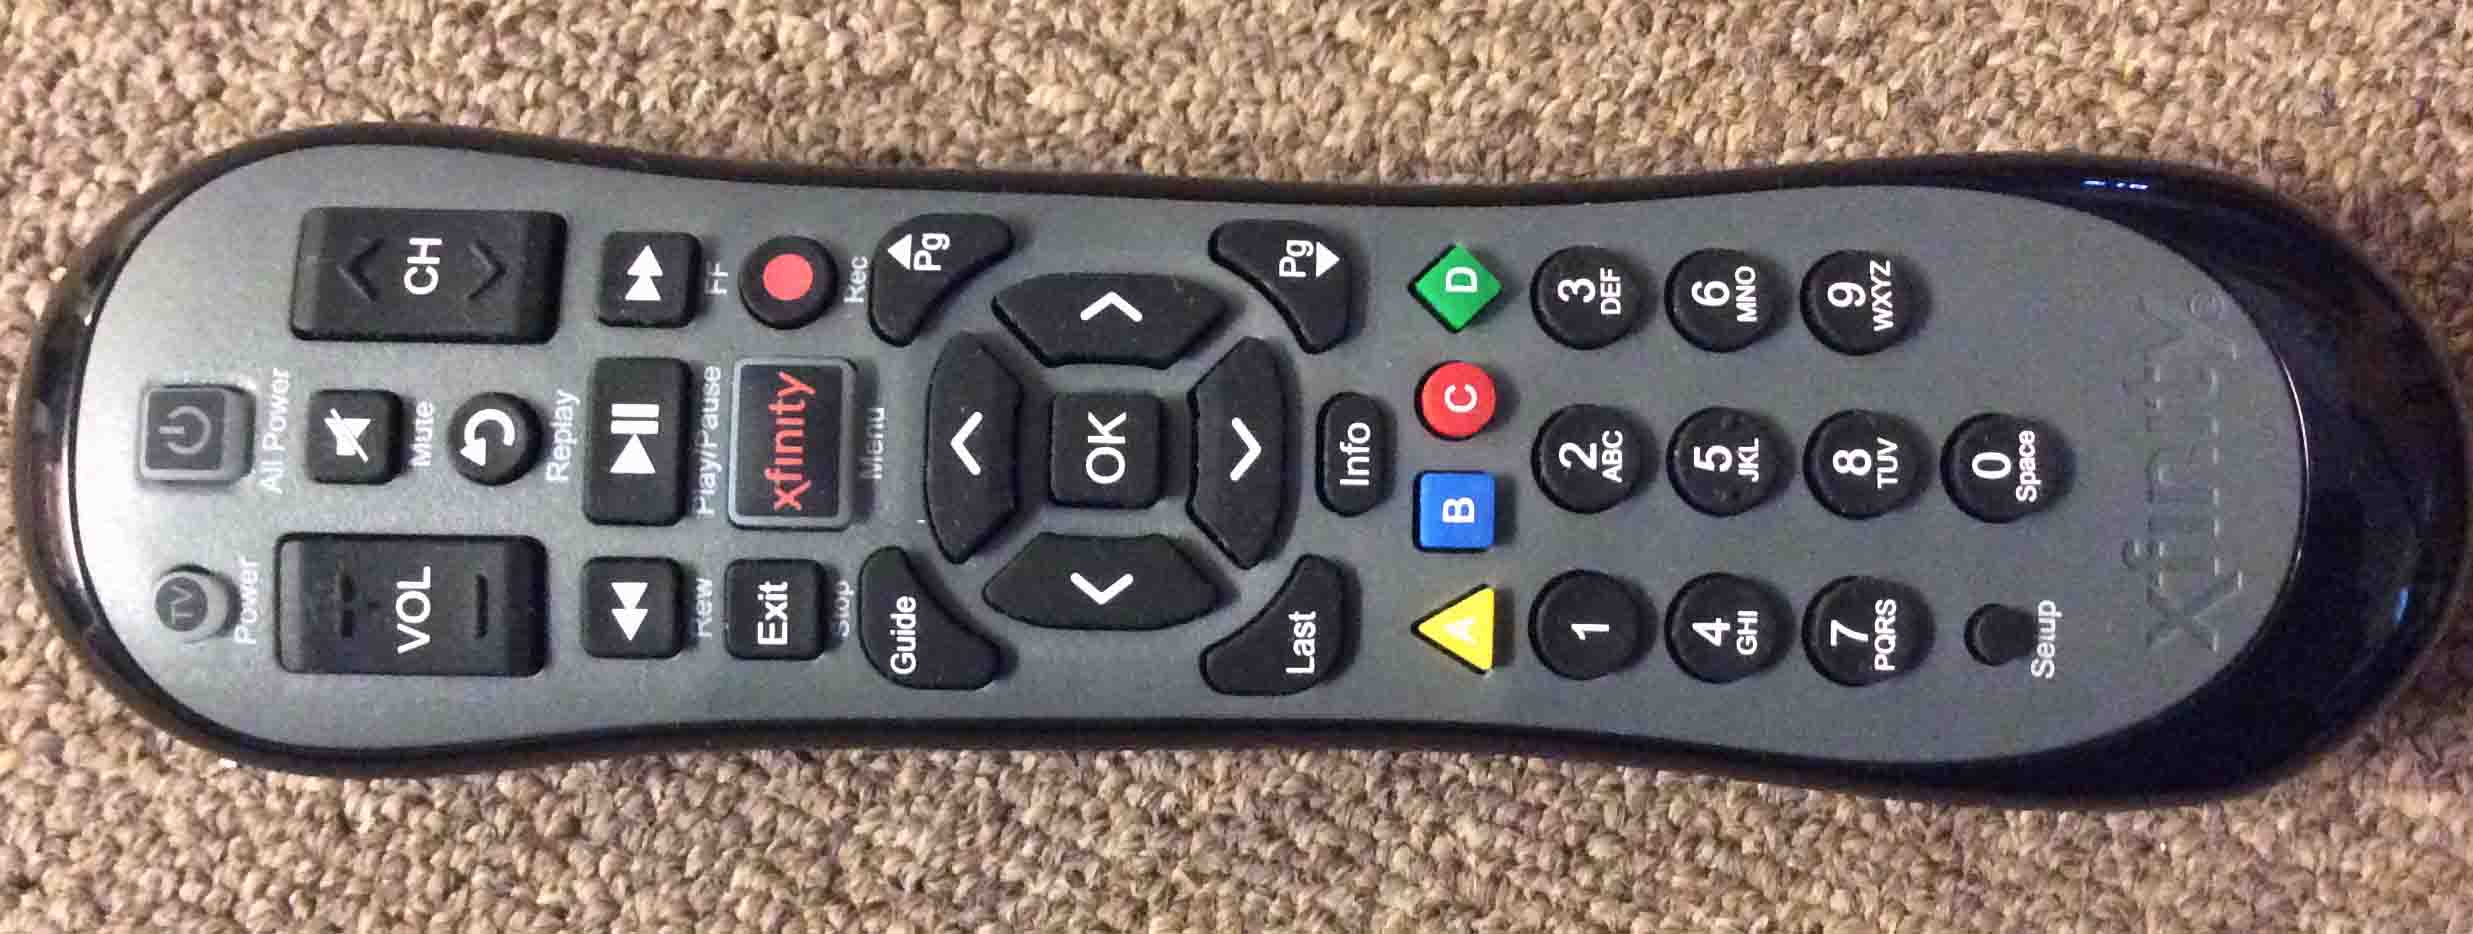 Comcast Remote Reset Cable Box - Somurich com